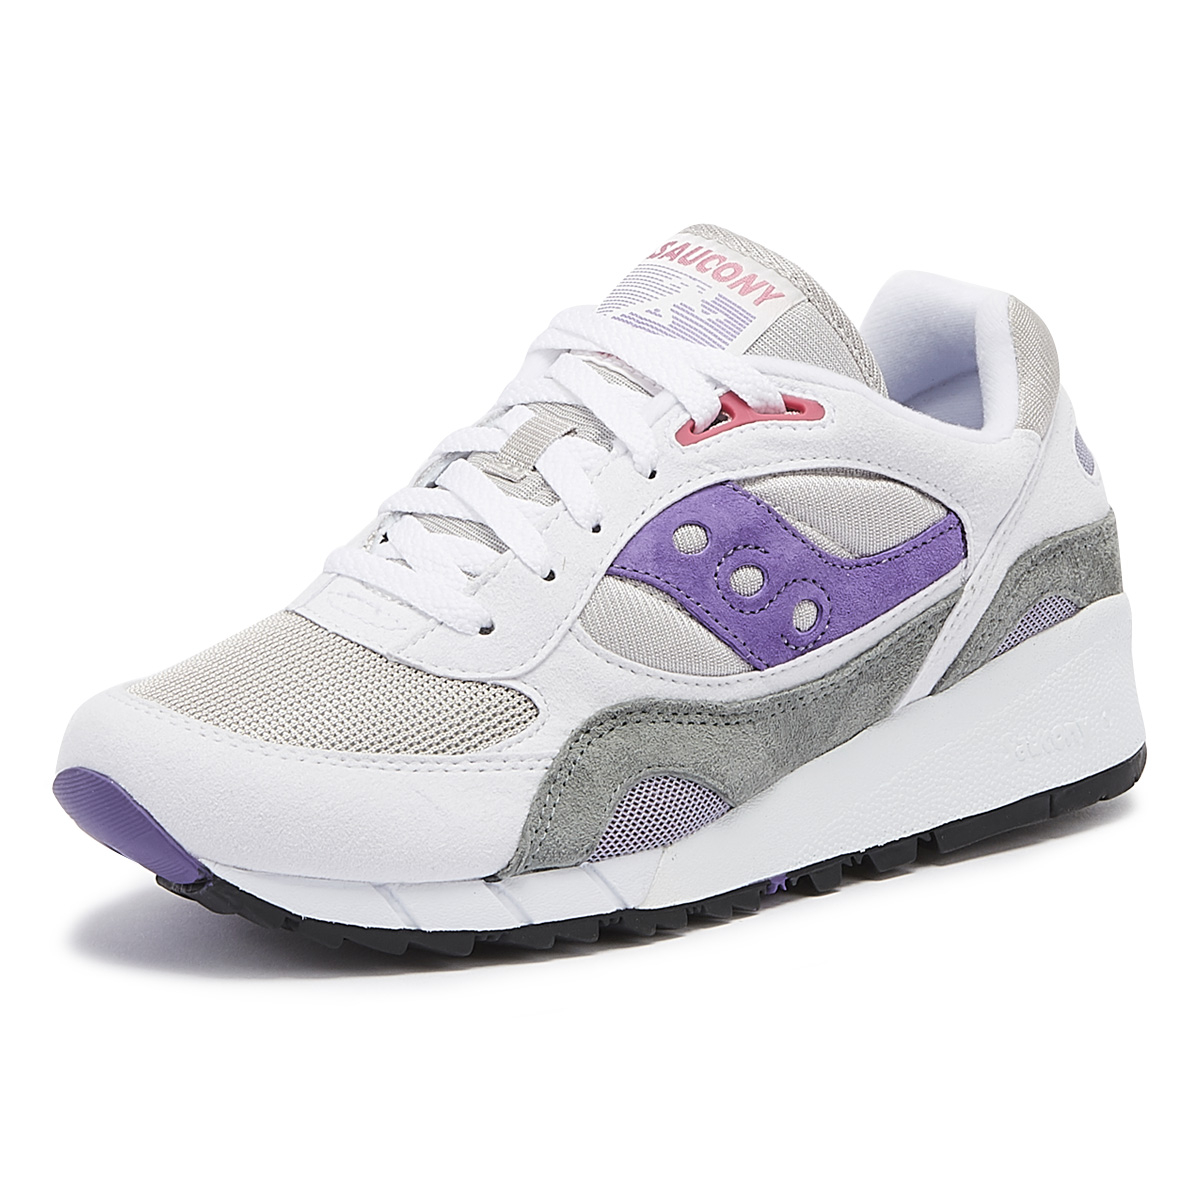 Wellgosh | Trainer of The Week | Saucony Shadow 6000 White